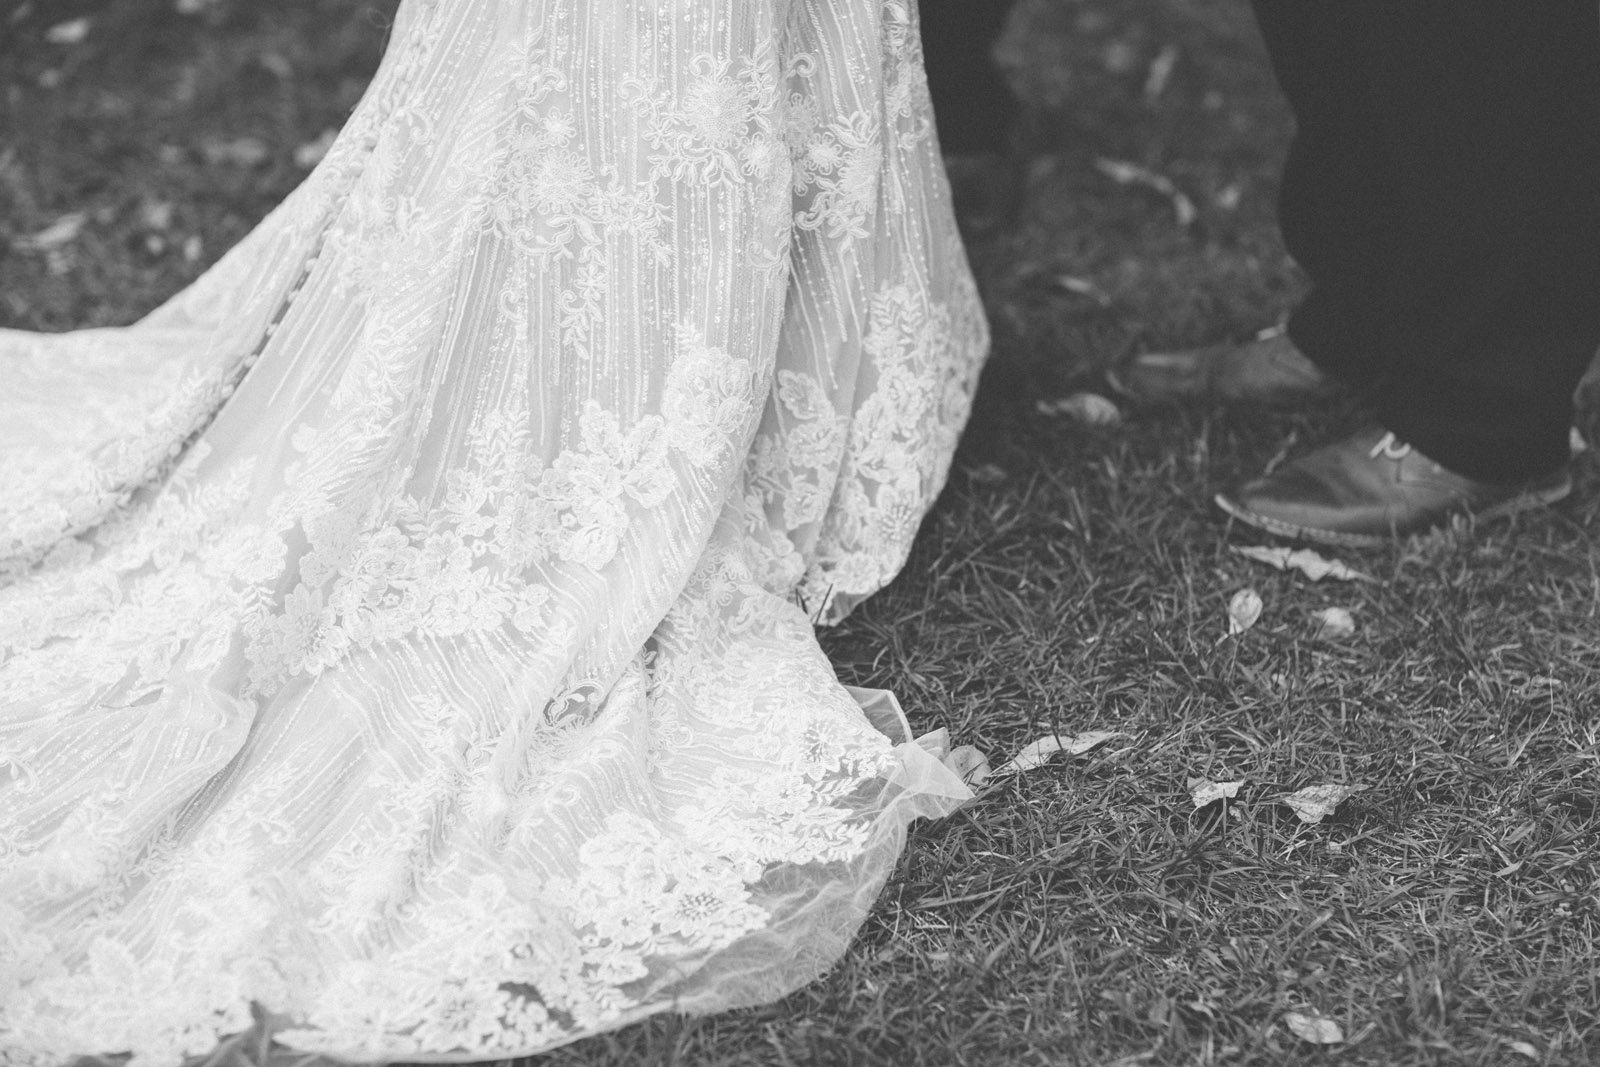 065-wedding-dress-on-the-forest-floor